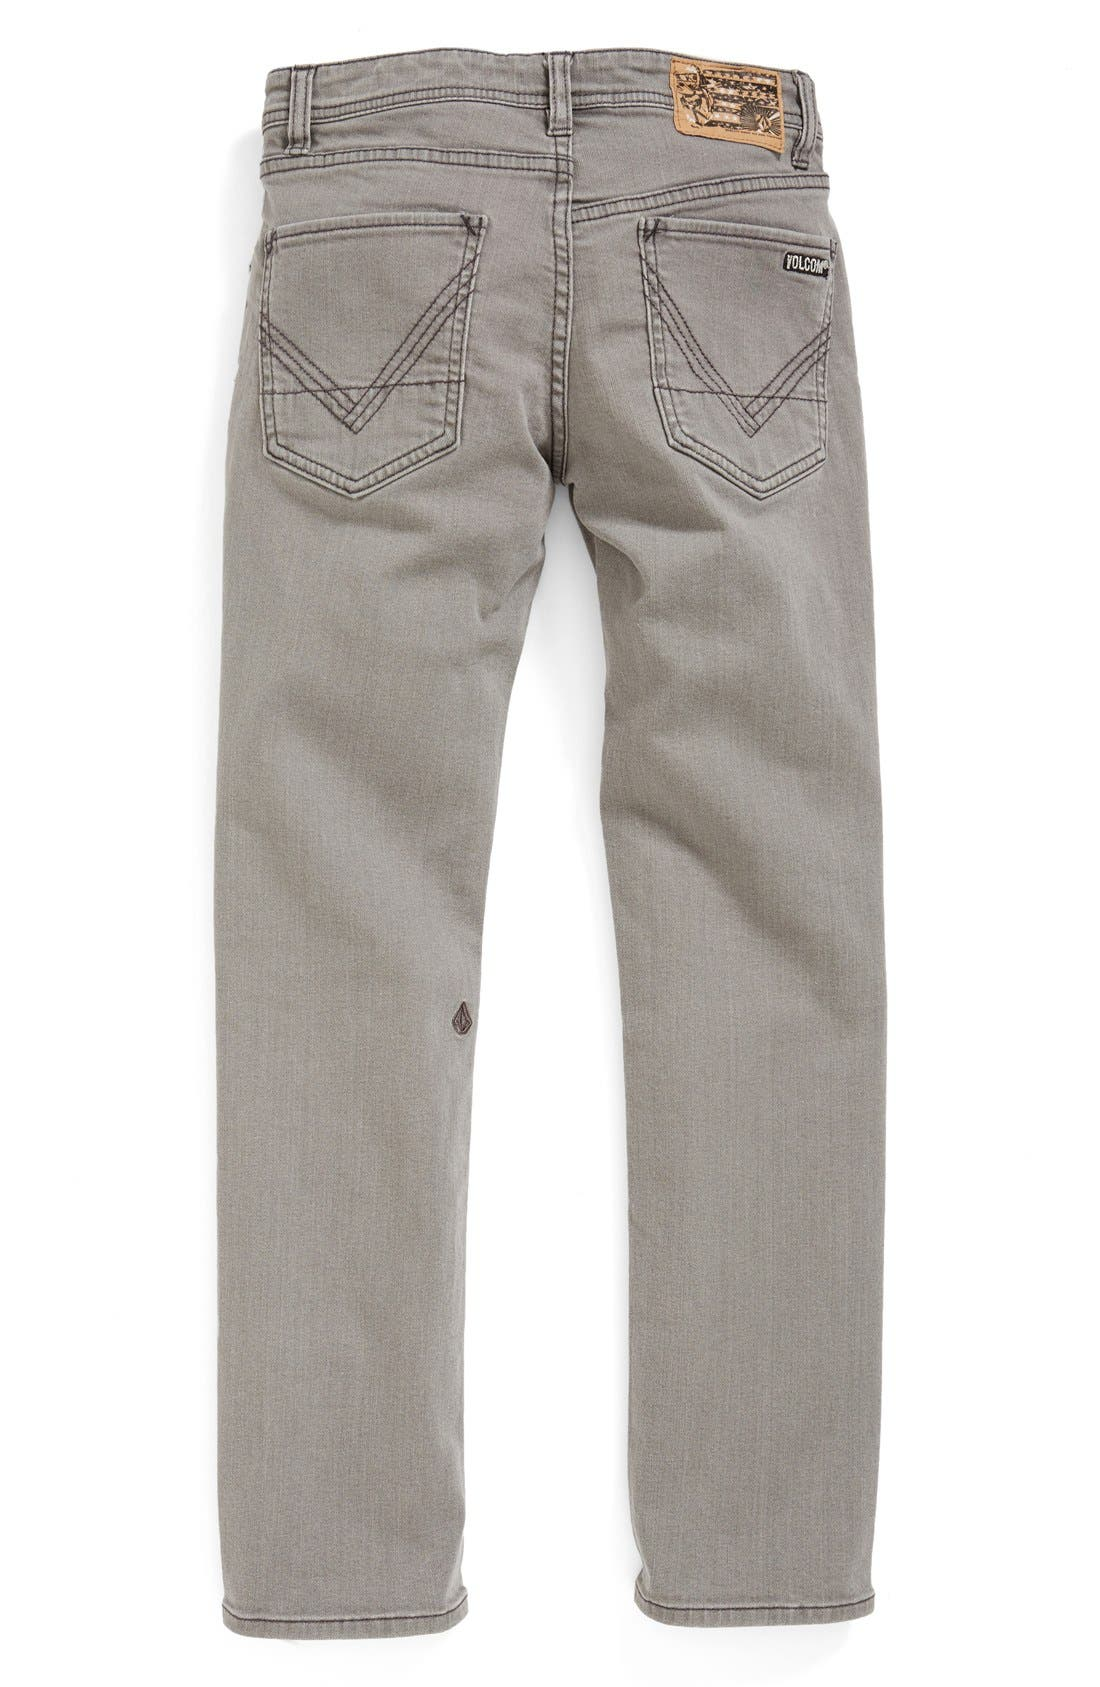 Main Image - Volcom 'Vorta' Slim Fit Jeans (Big Boys)